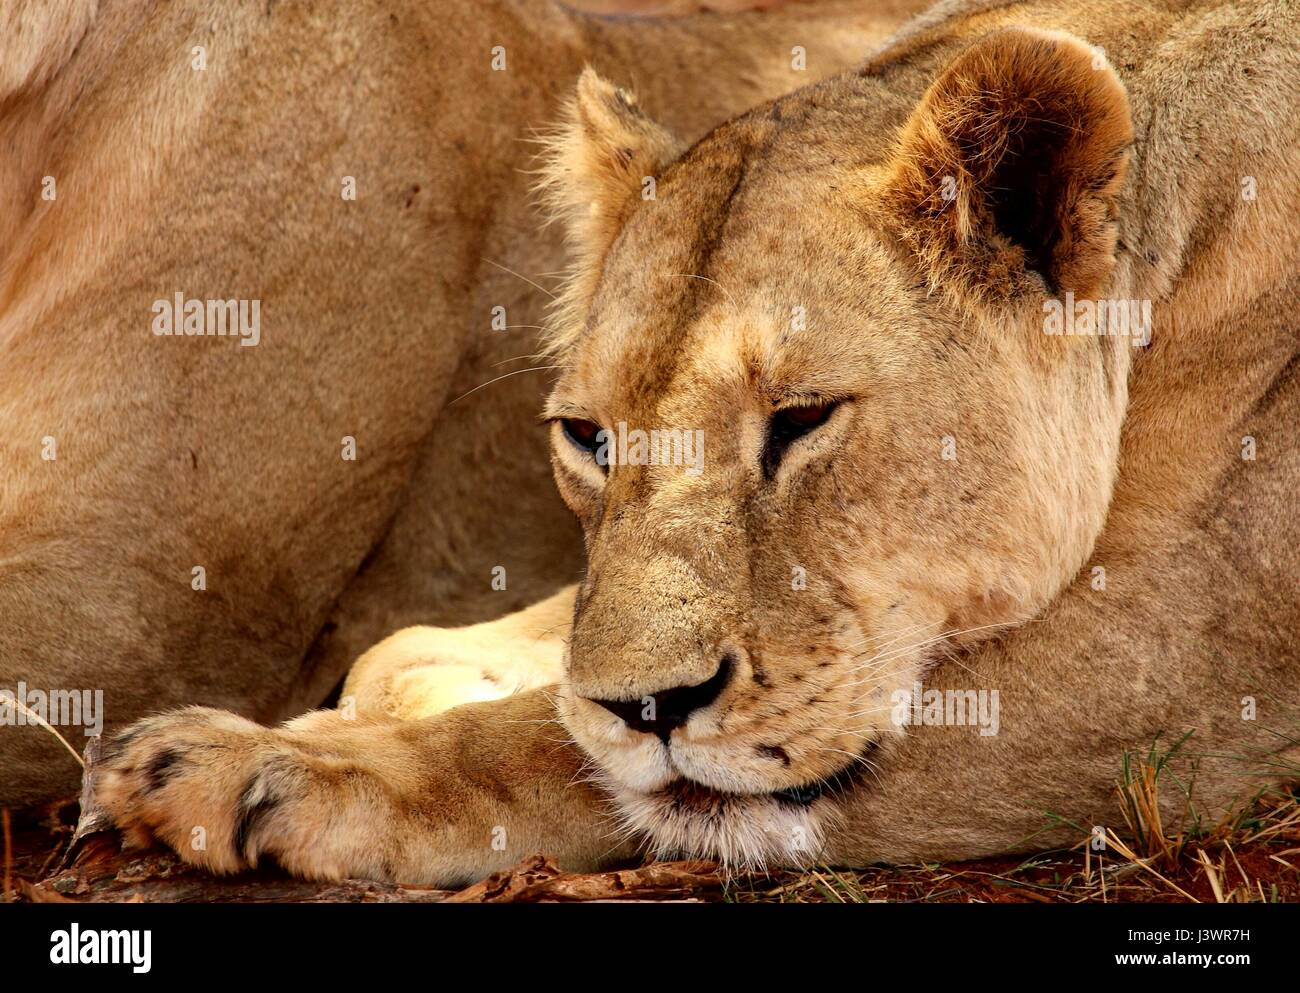 Female lion laying down falling asleep - Stock Image